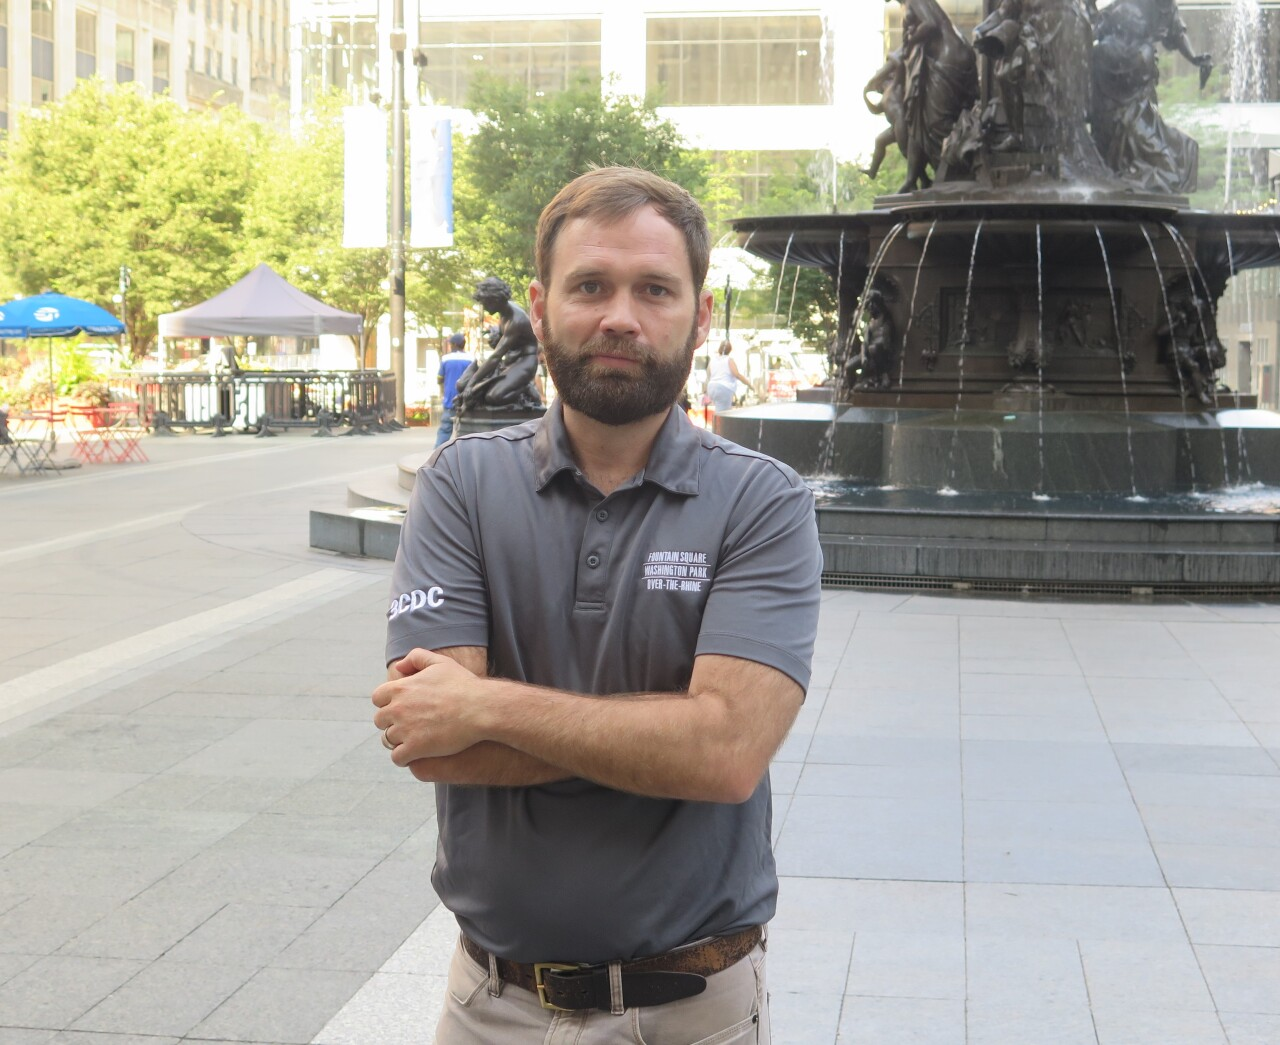 David Vissman poses for a photo at Fountain Square. He is wearing a grey shirt and has brown hair and a brown beard and mustache.